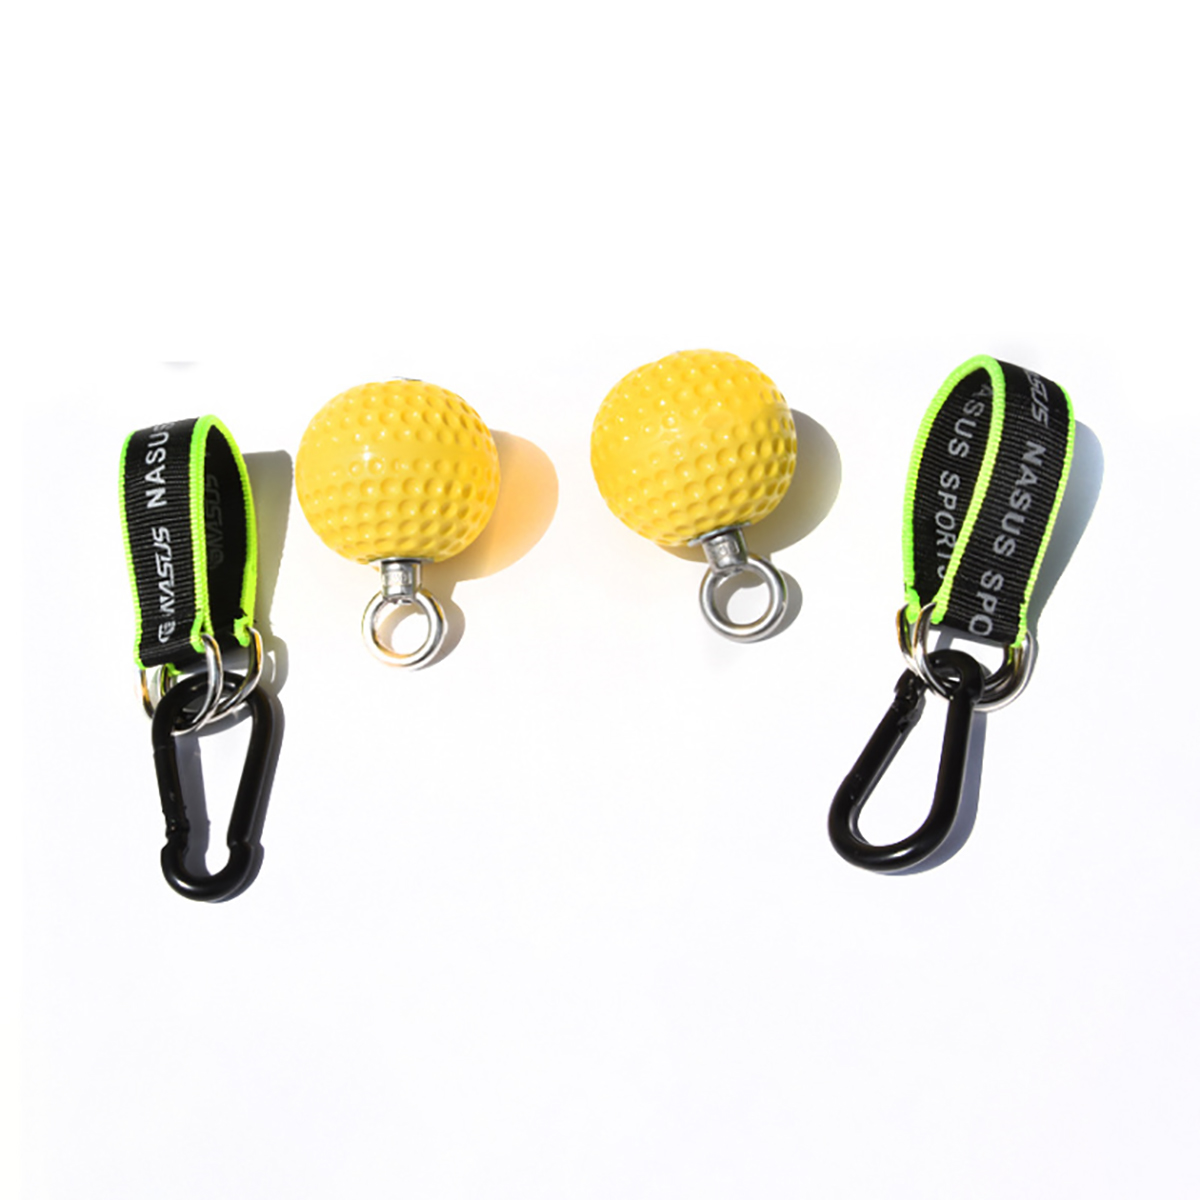 Body-Solid Cannonball Grip Balls Attach to pull up bar